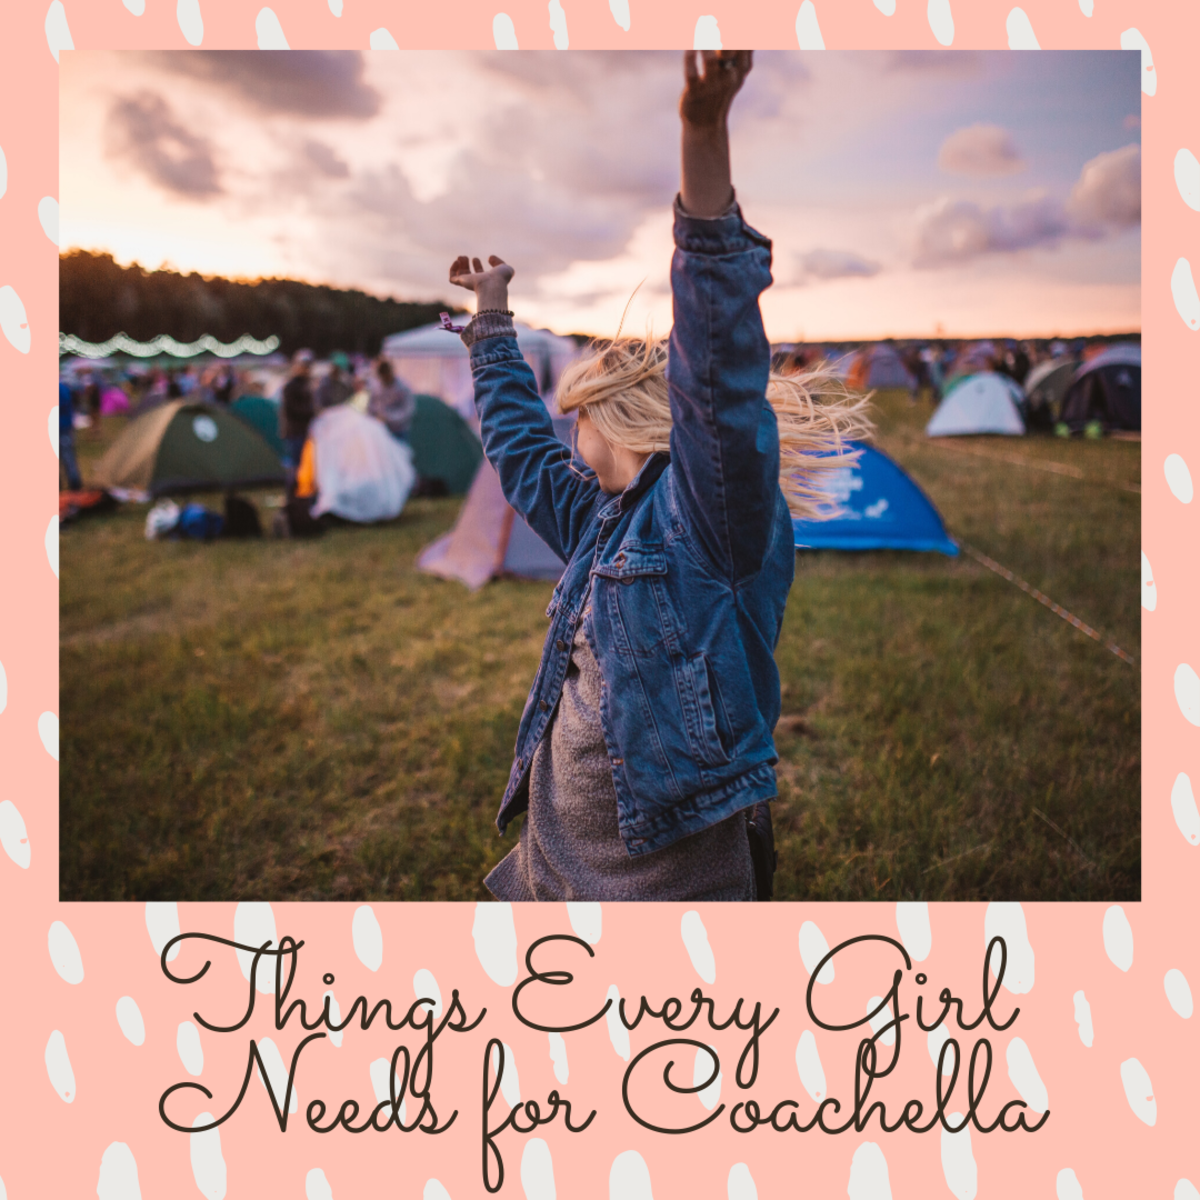 10 Things Every Girl Needs to Bring to Coachella